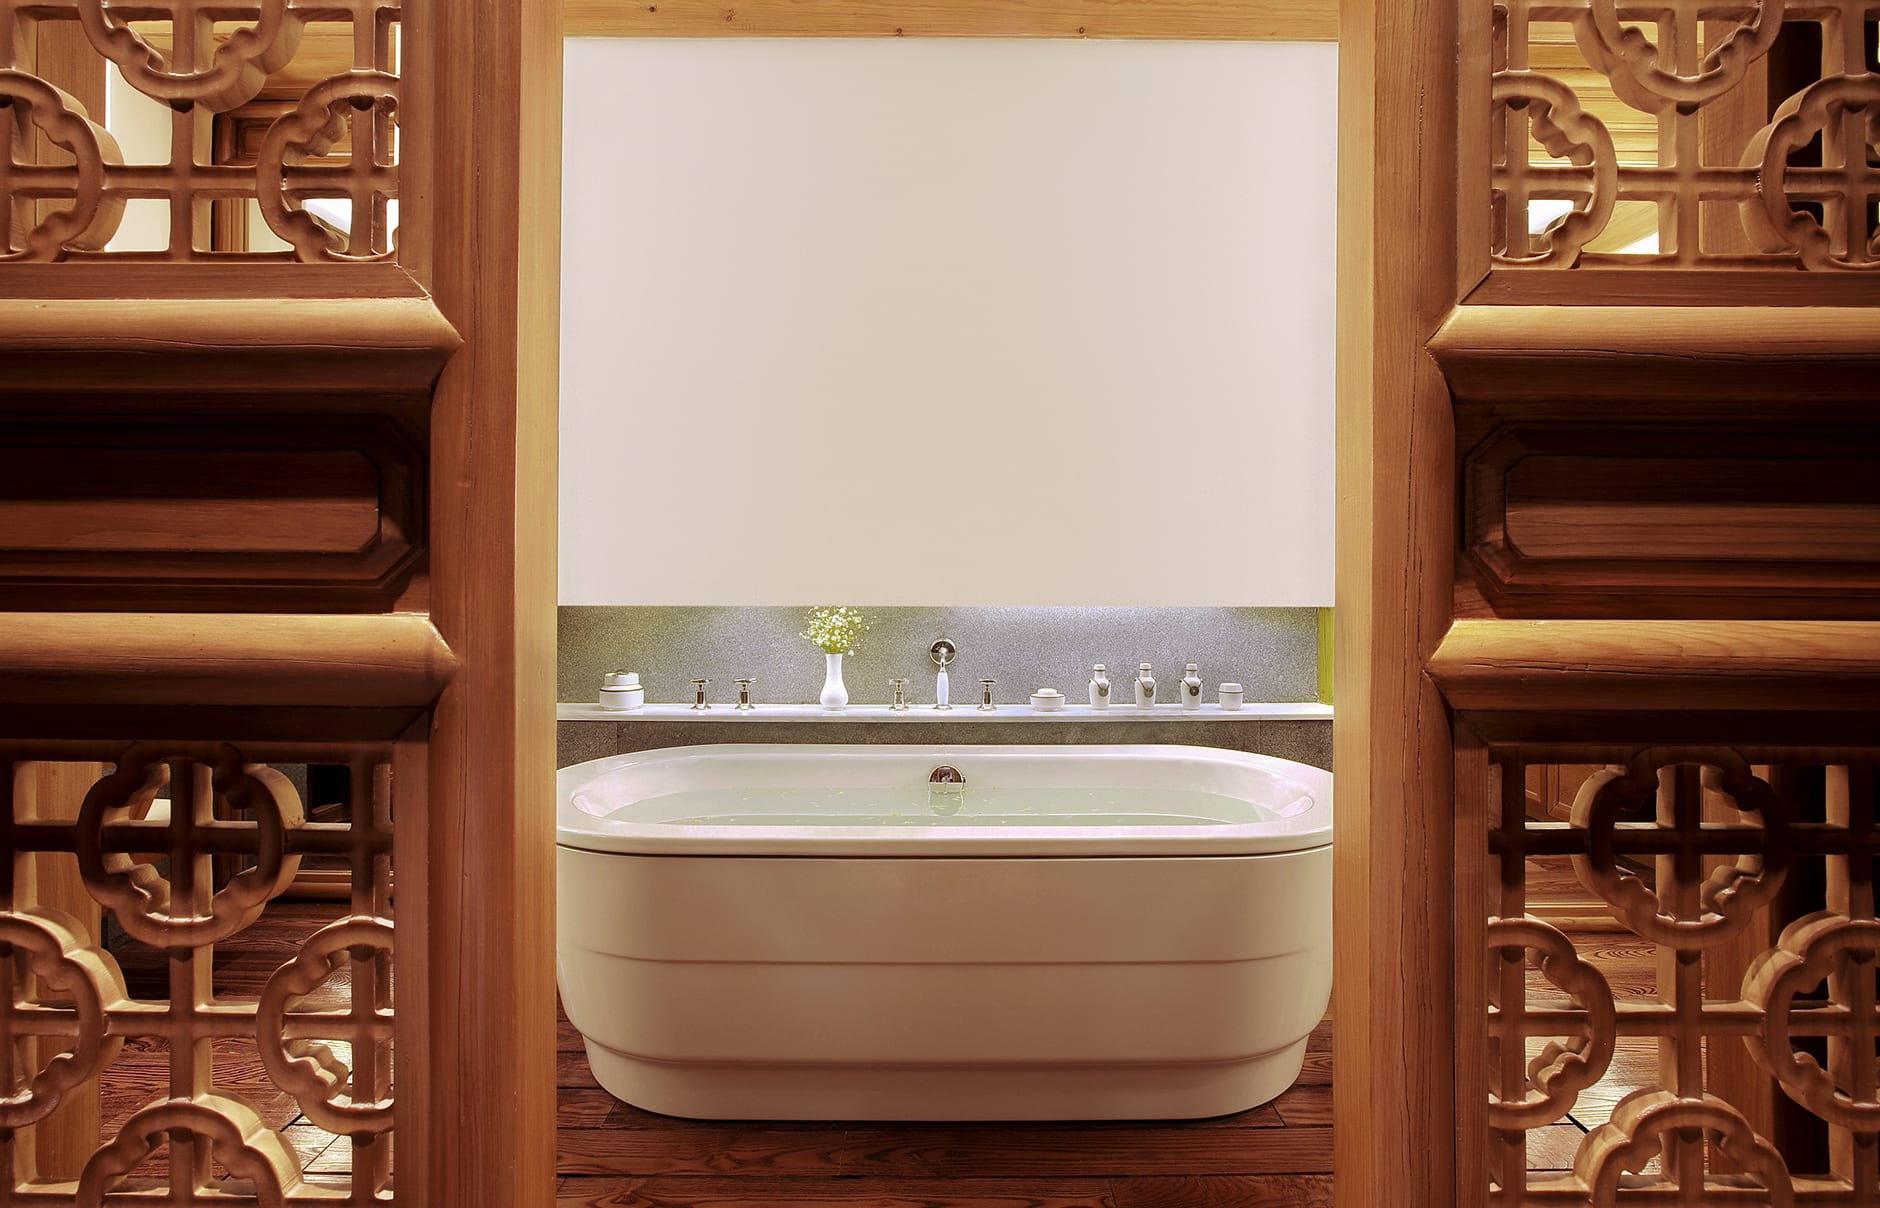 Amandayan - Deluxe Suite Bath. Amandayan, Lijiang, China. Luxury Hotel Review by TravelPlusStyle. Photo © Aman Resorts